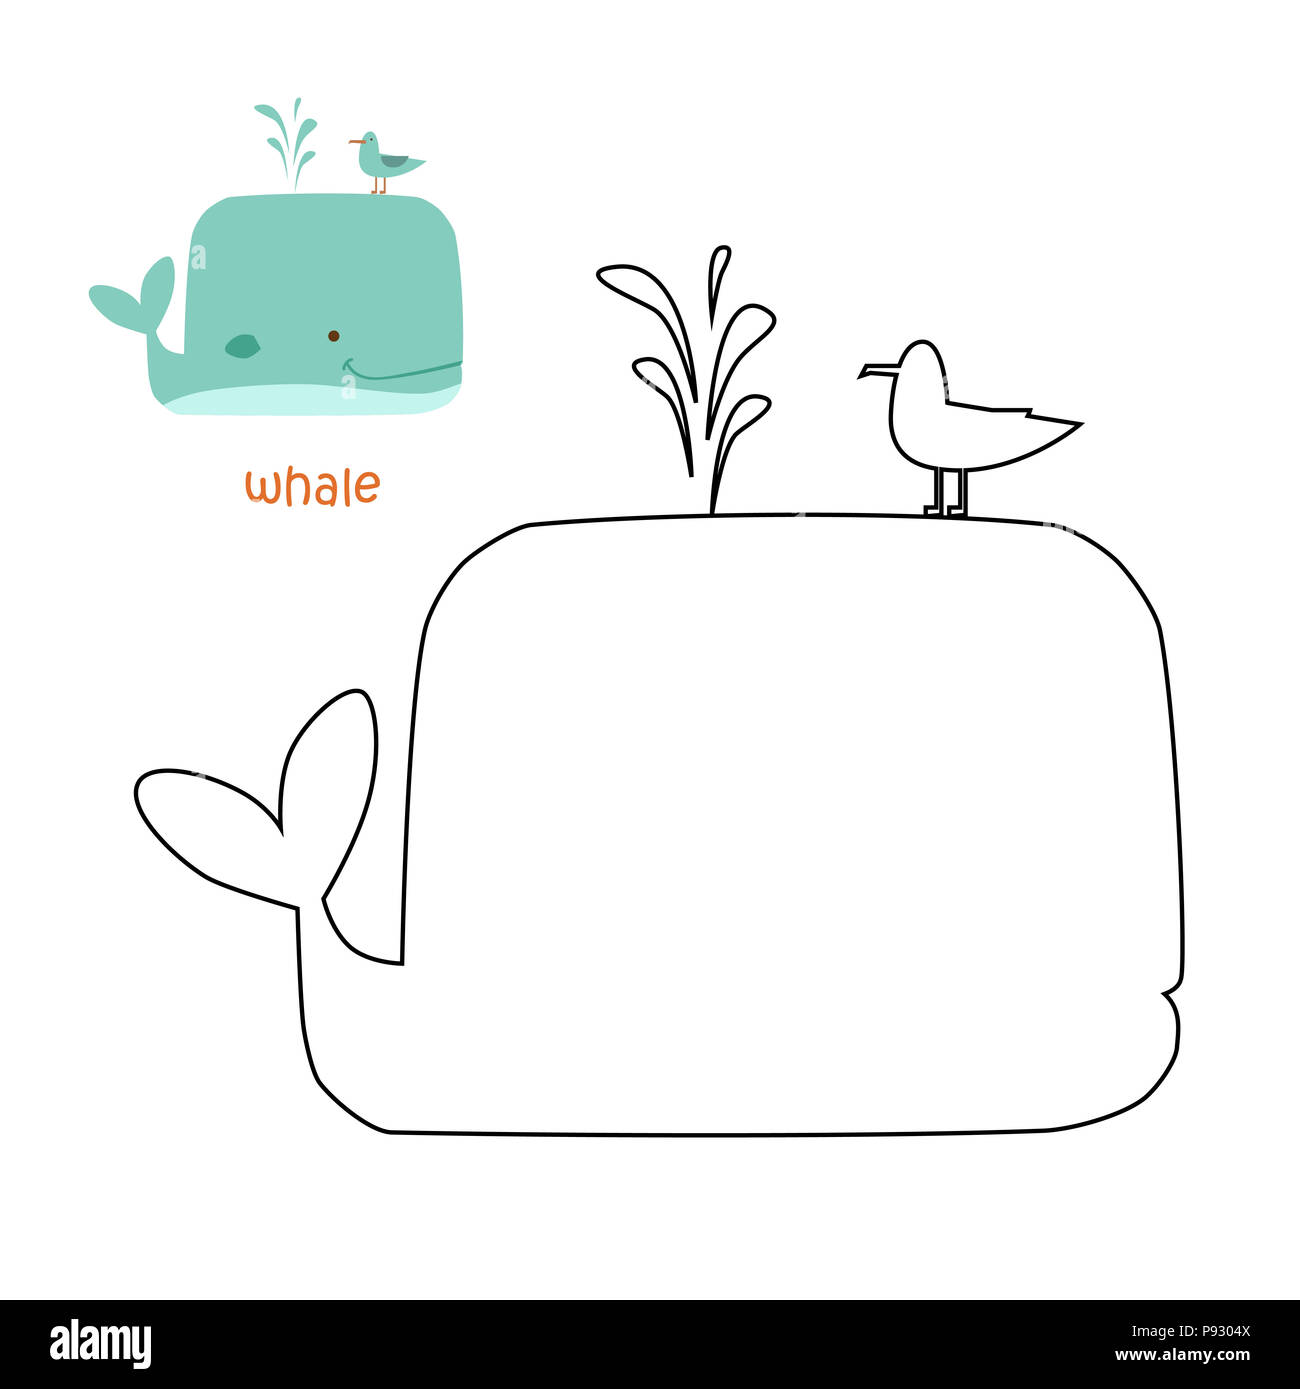 Coloring Book For Children Coloring Page With Whale